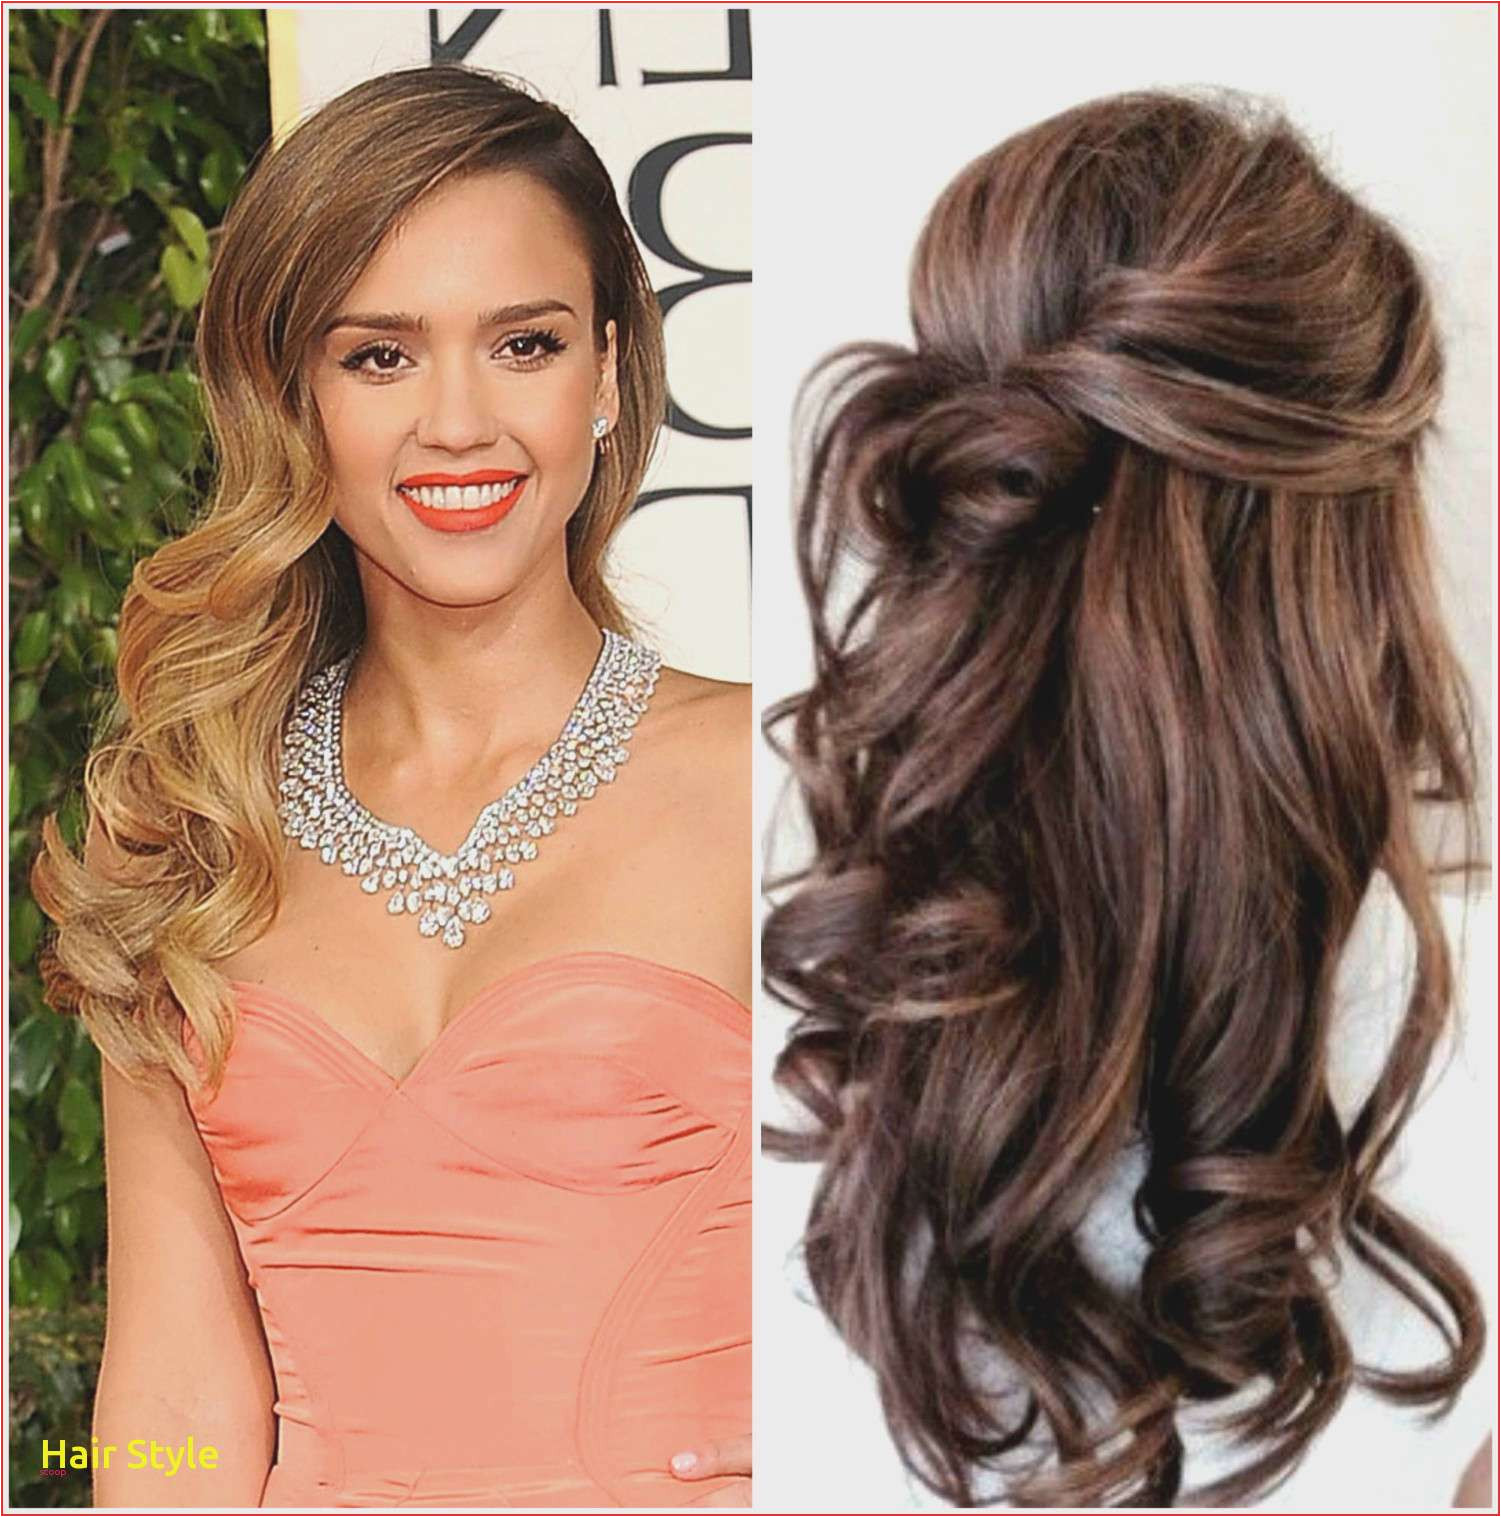 curly wedding hairstyles awesome inspirational hairstyles for long hair 2015 luxury i pinimg 1200x 0d